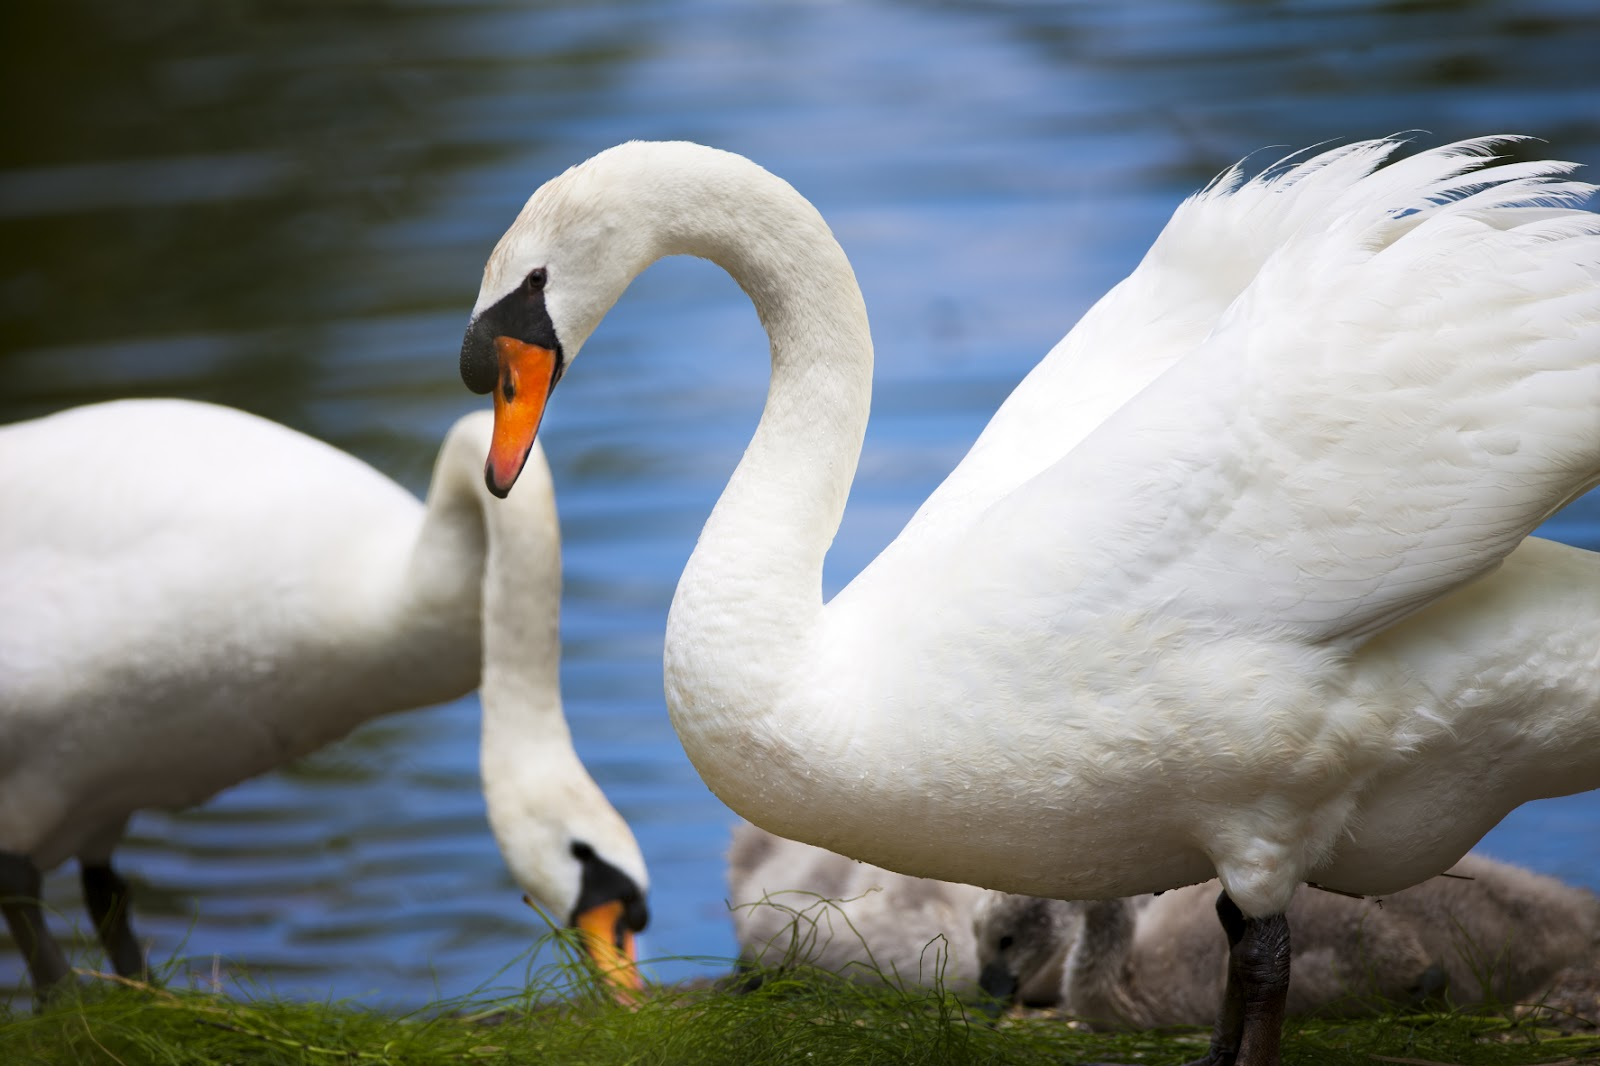 A swan pair eats together by the side of a small pond